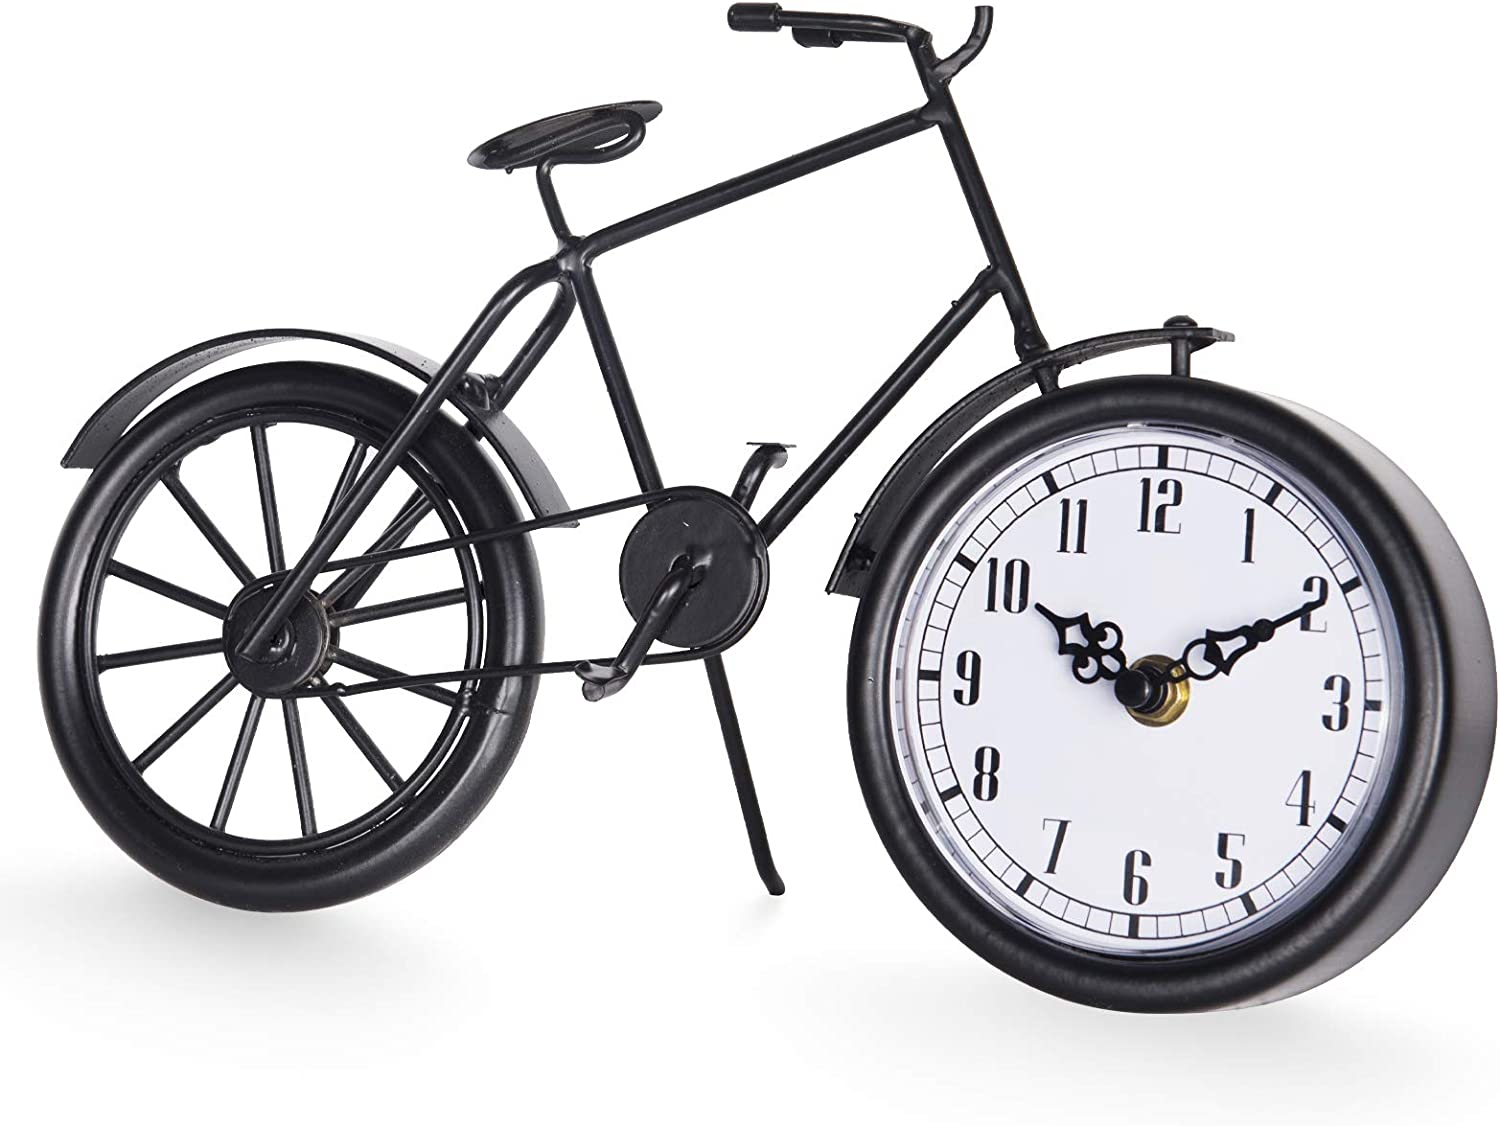 JUMBO DECOR Vintage Bicycle Table Clock New arrival Free shipping / New Stand on Black Meta Bike